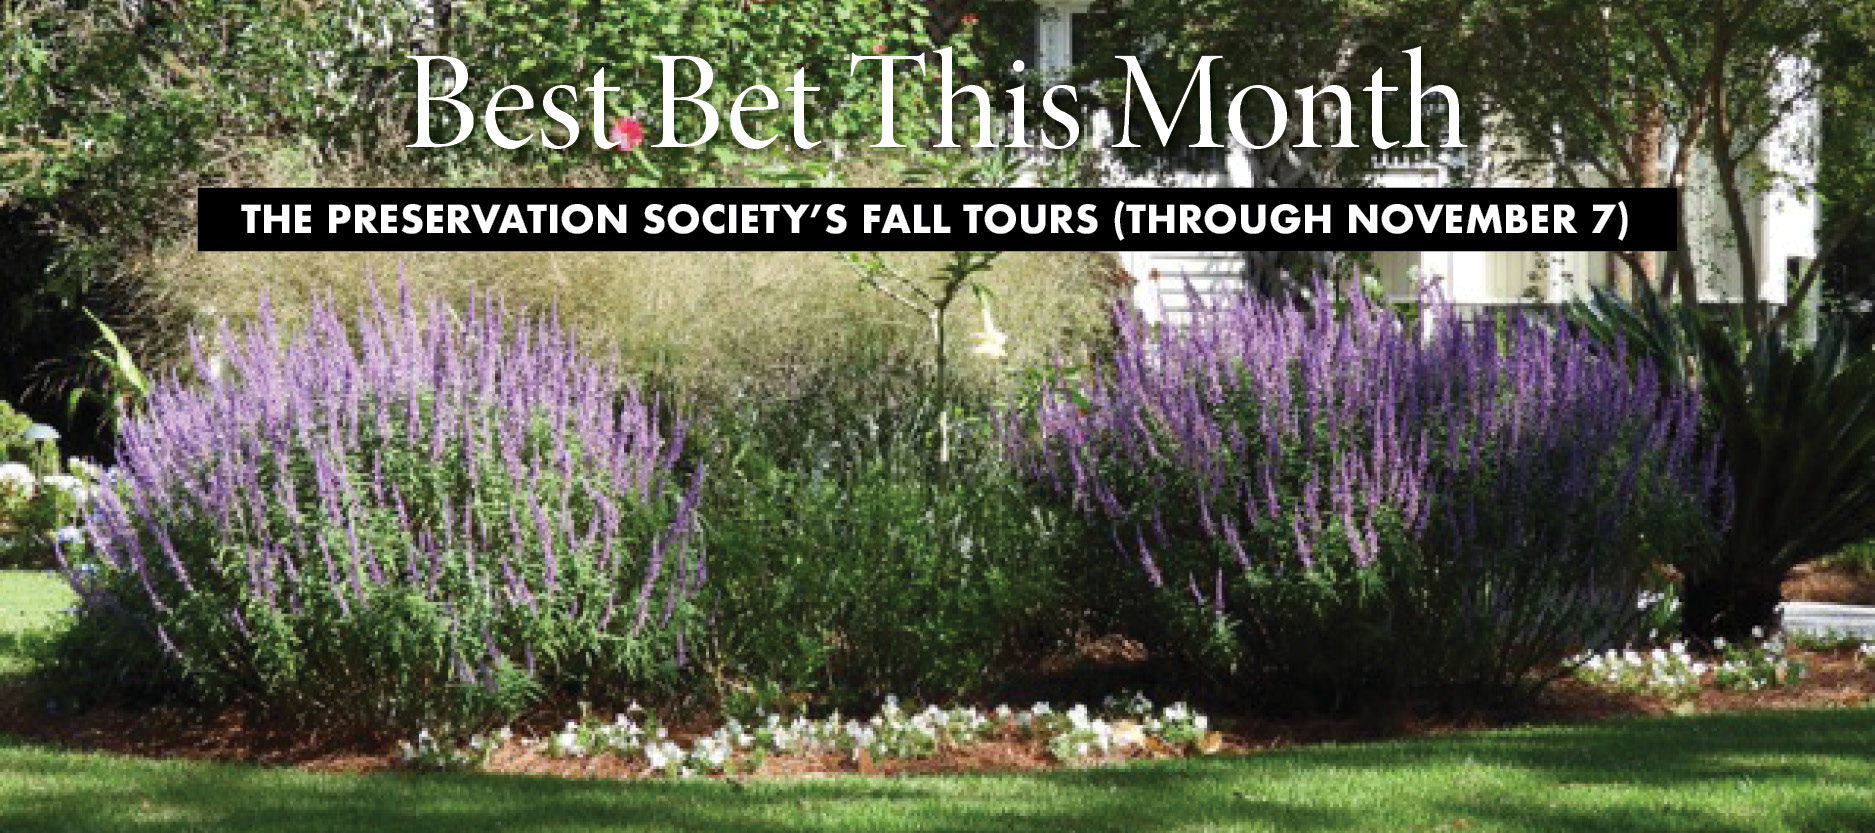 Best Bet!: The Fall Tours of Architecture, History, & Gardens